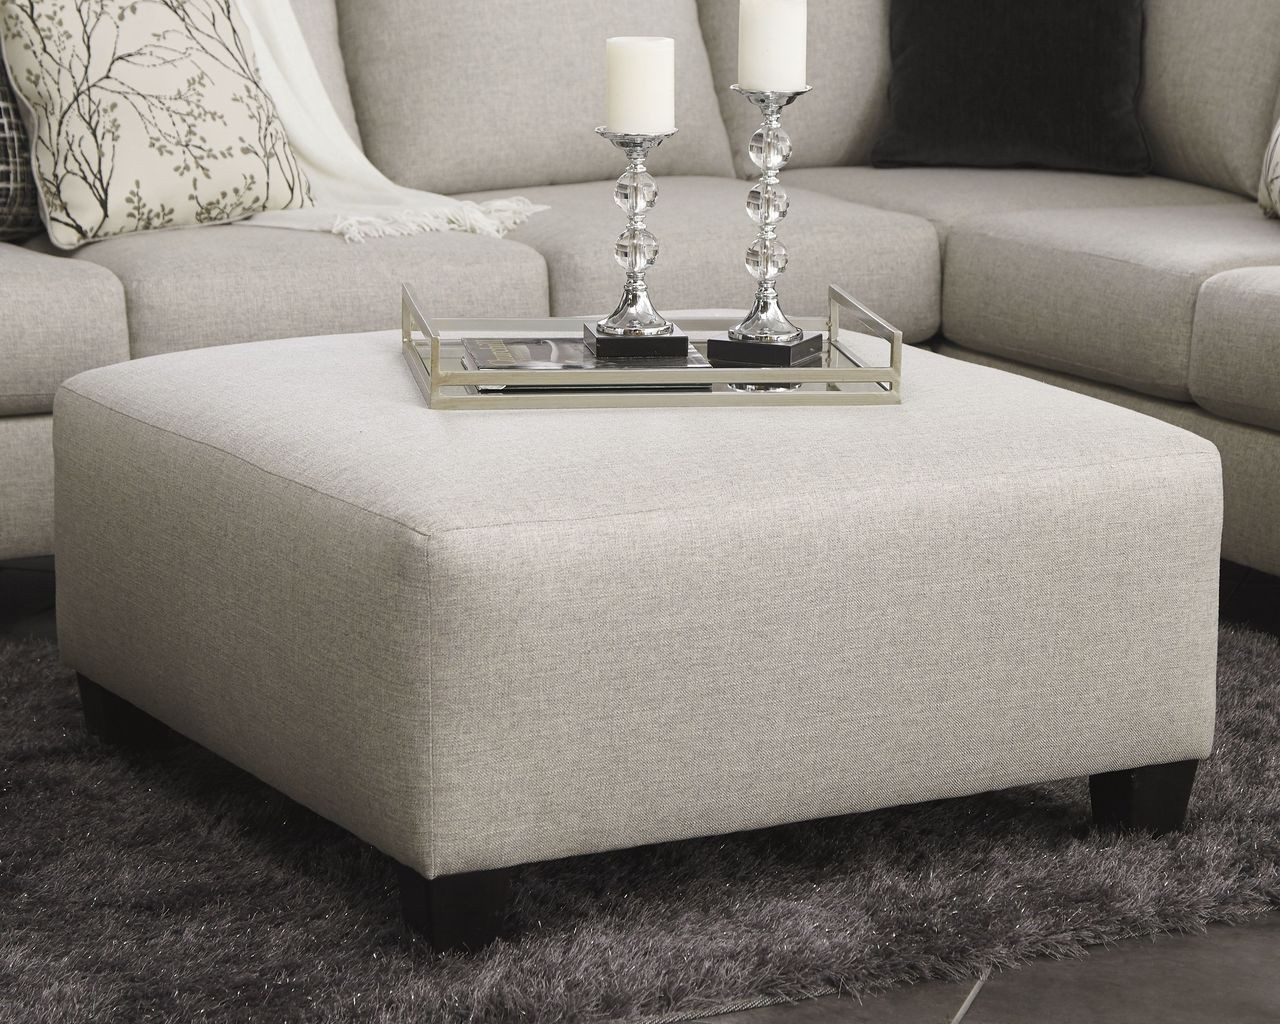 The Hallenberg Fog Oversized Accent Ottoman Available At Ritz Furniture Planet Serving Mississauga On